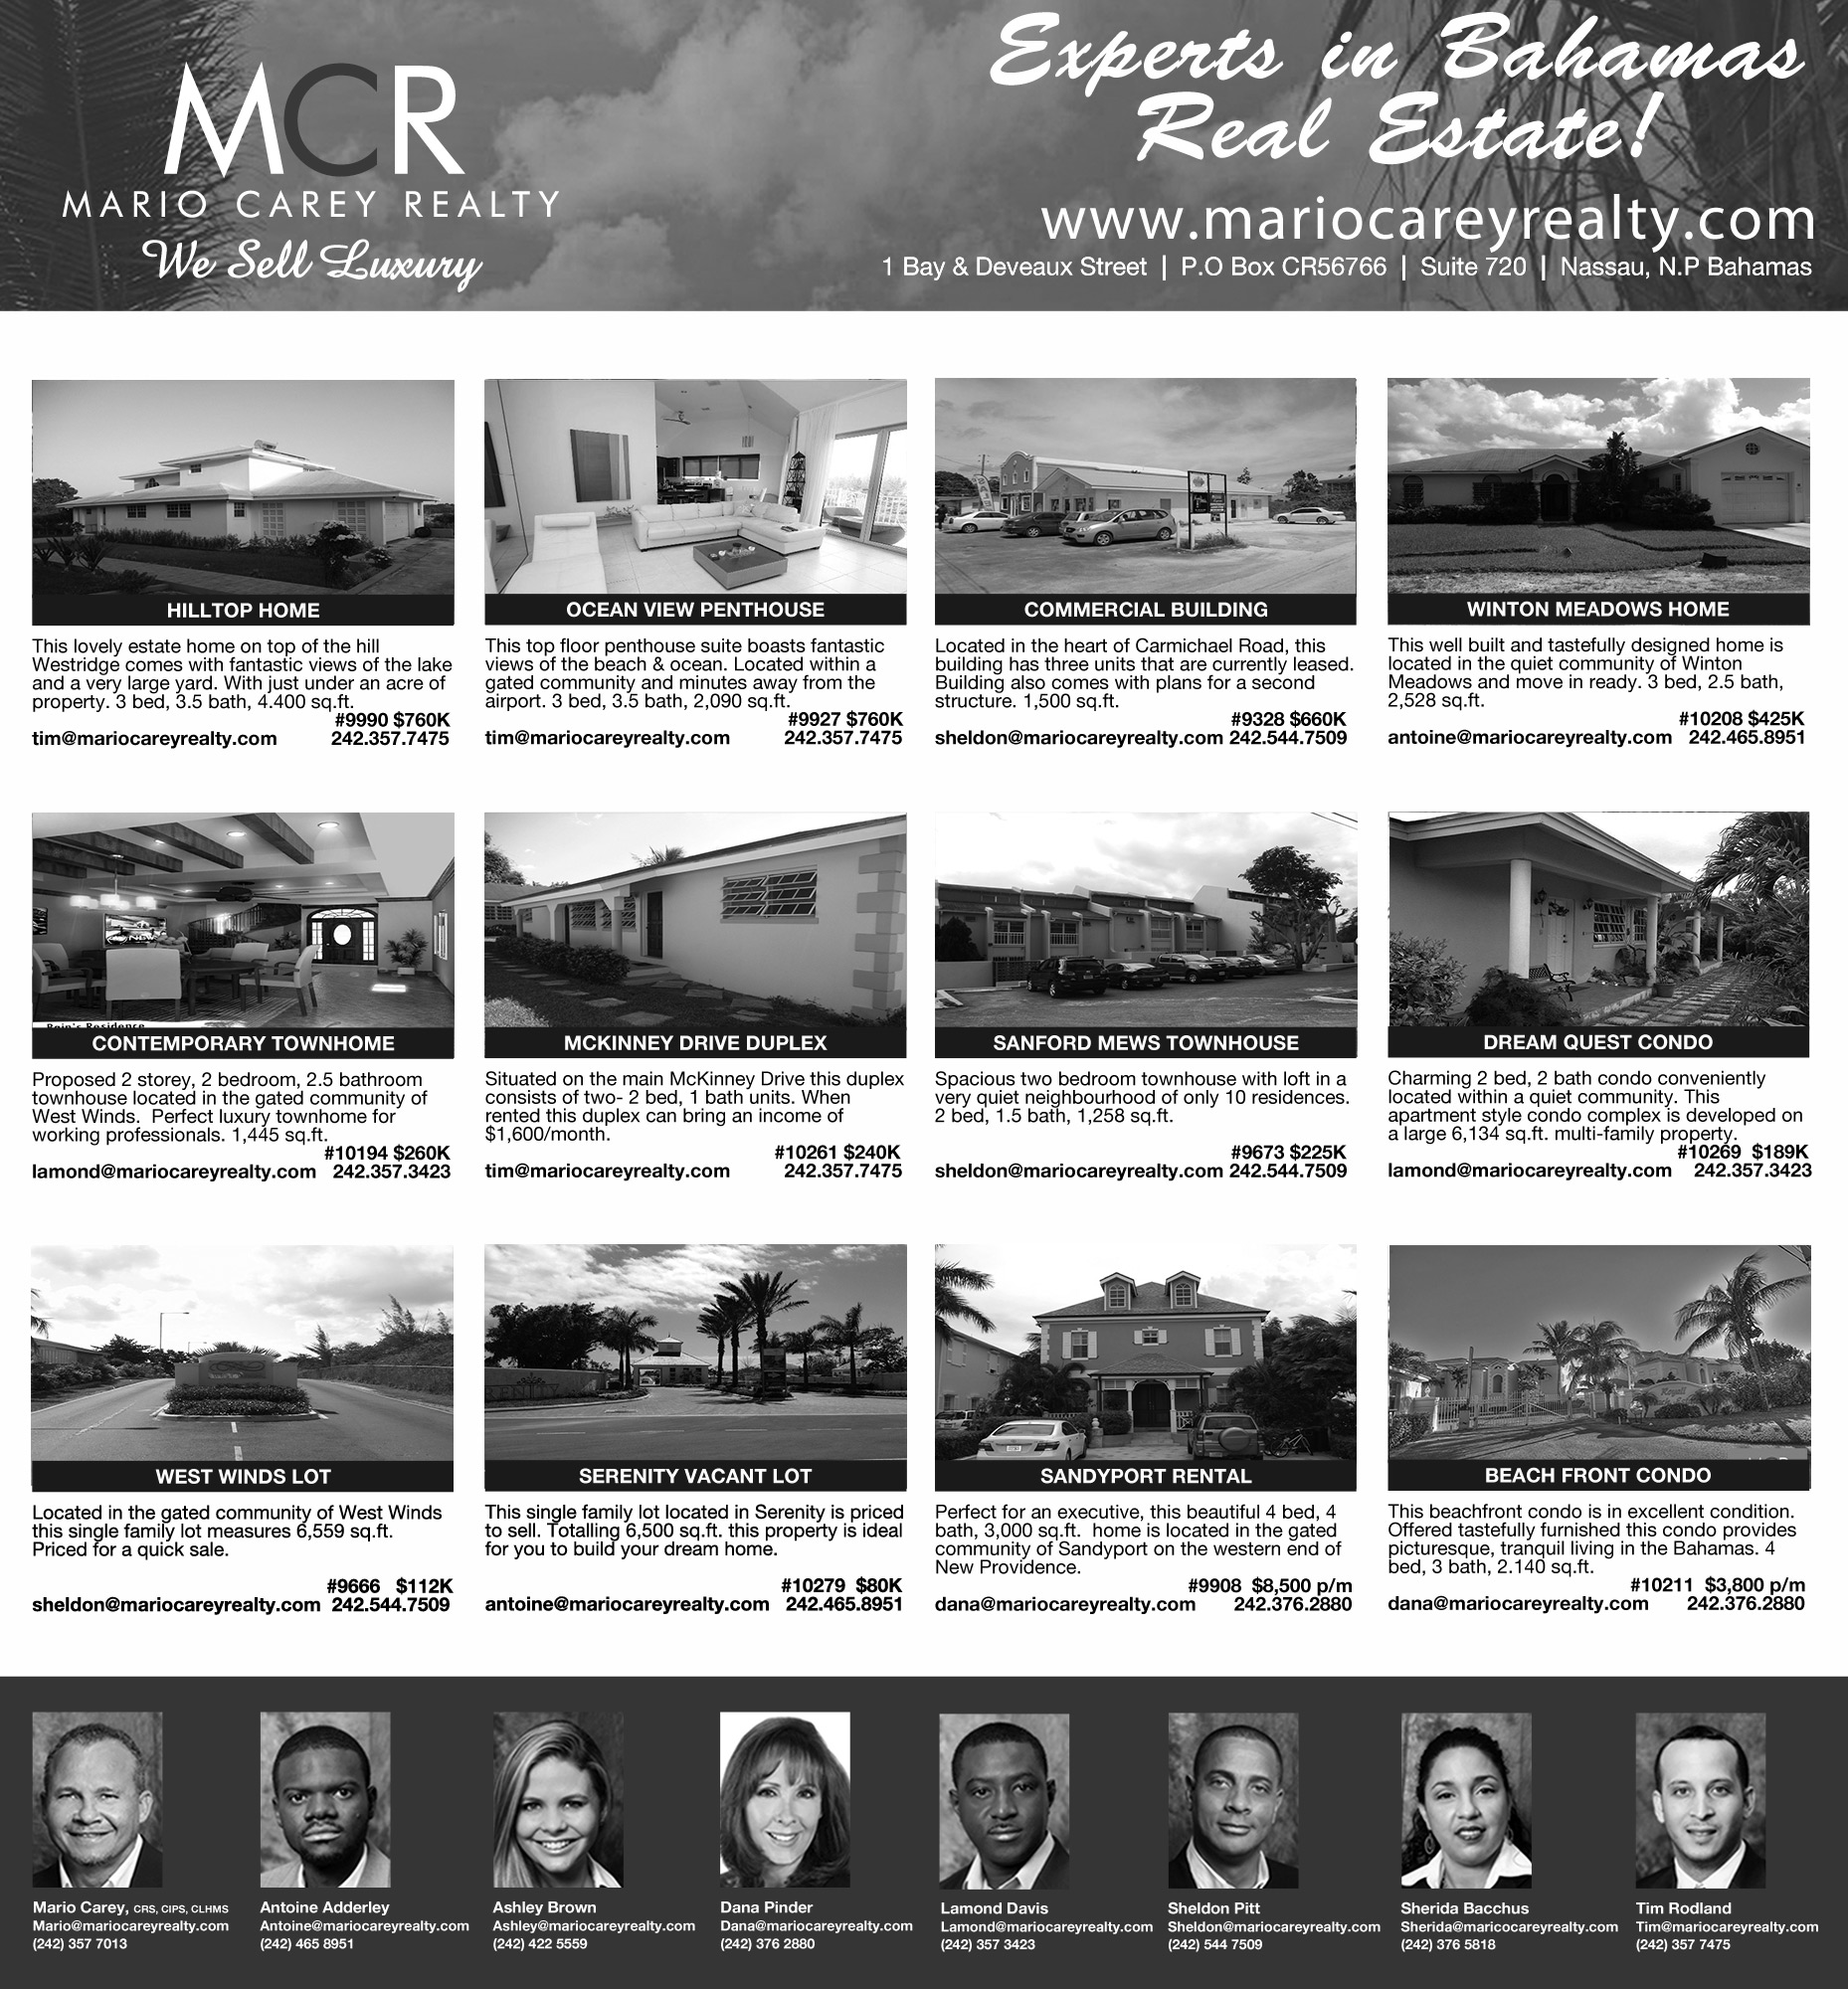 Properties For Sale & Rent in The Bahamas!